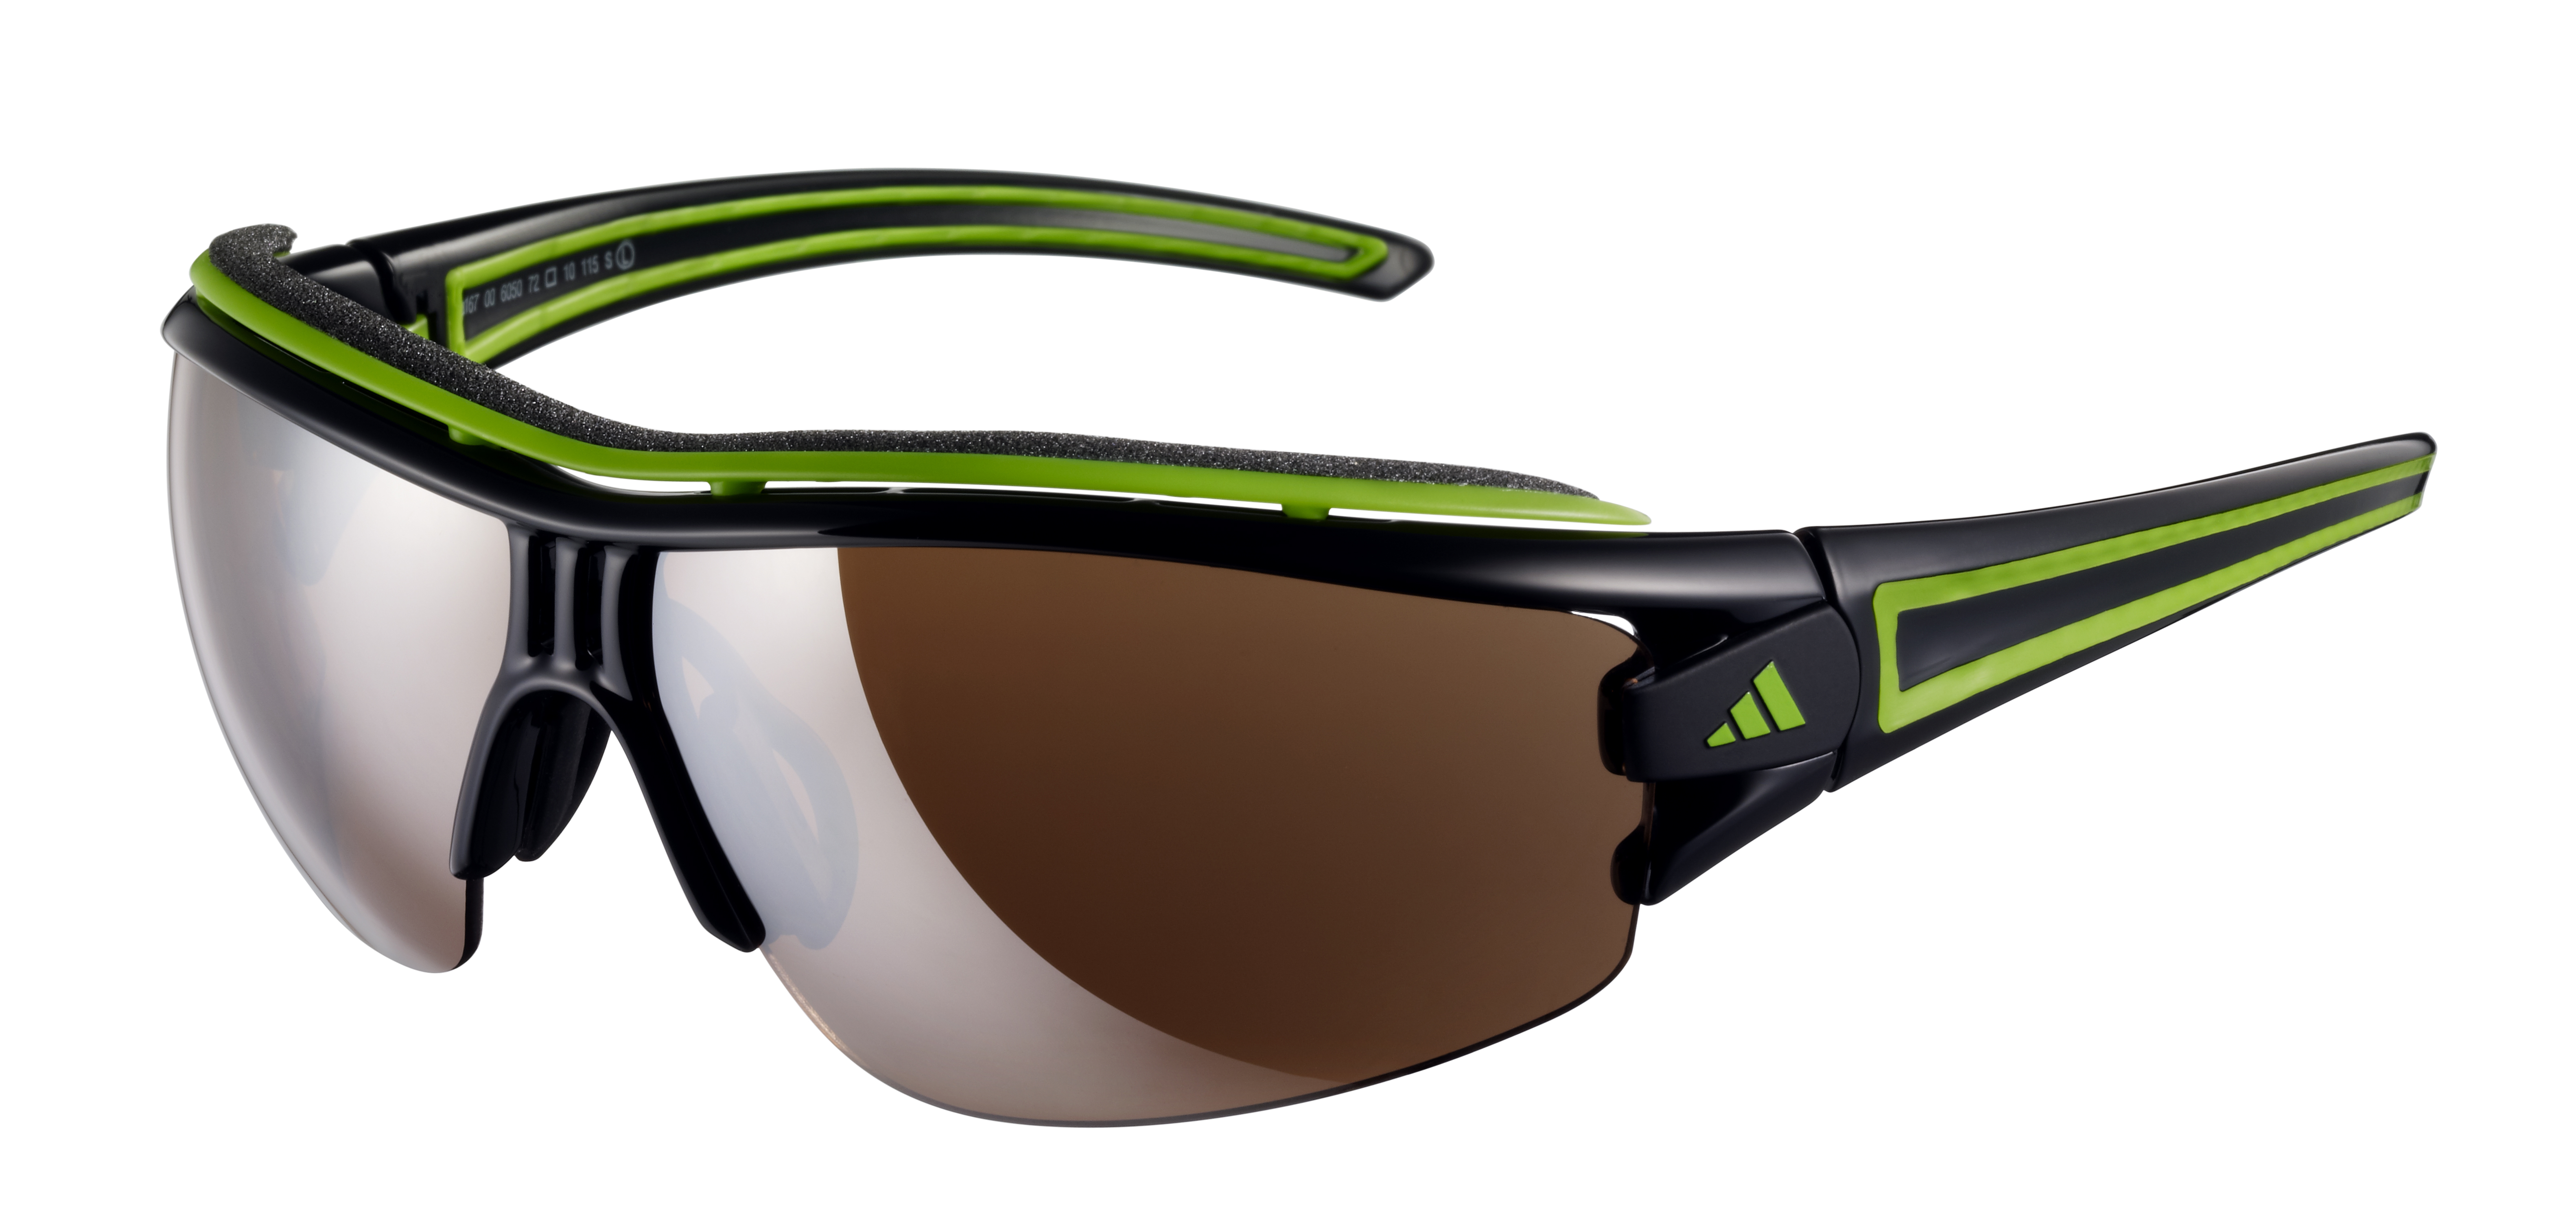 4a61467db2 Buy adidas glasses green   OFF67% Discounted